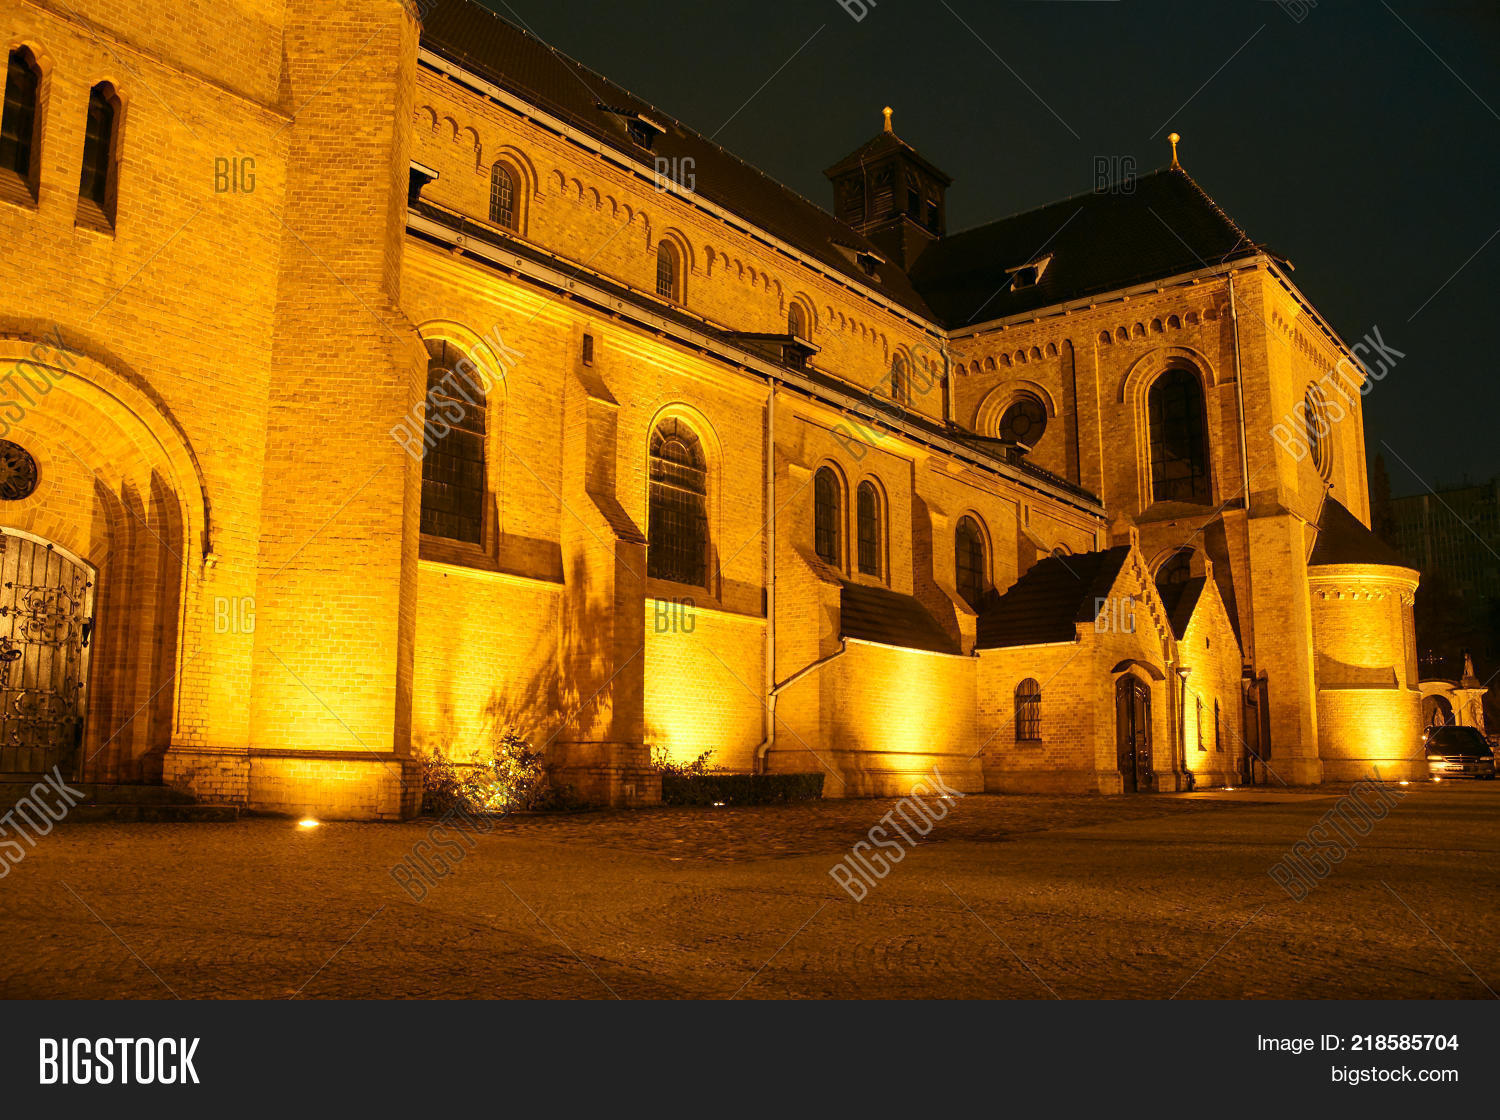 The Neo Gothic Church At Night In Poznan